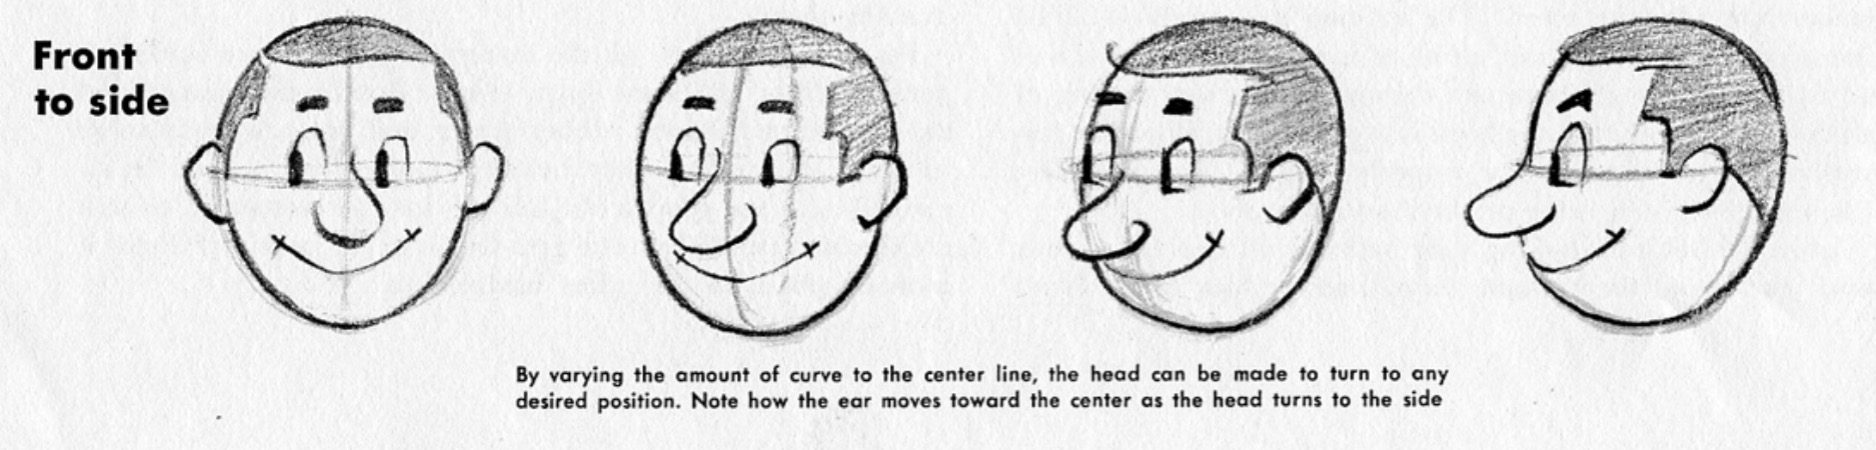 Learn to Draw Cartoons Lesson 1: The Comic Head